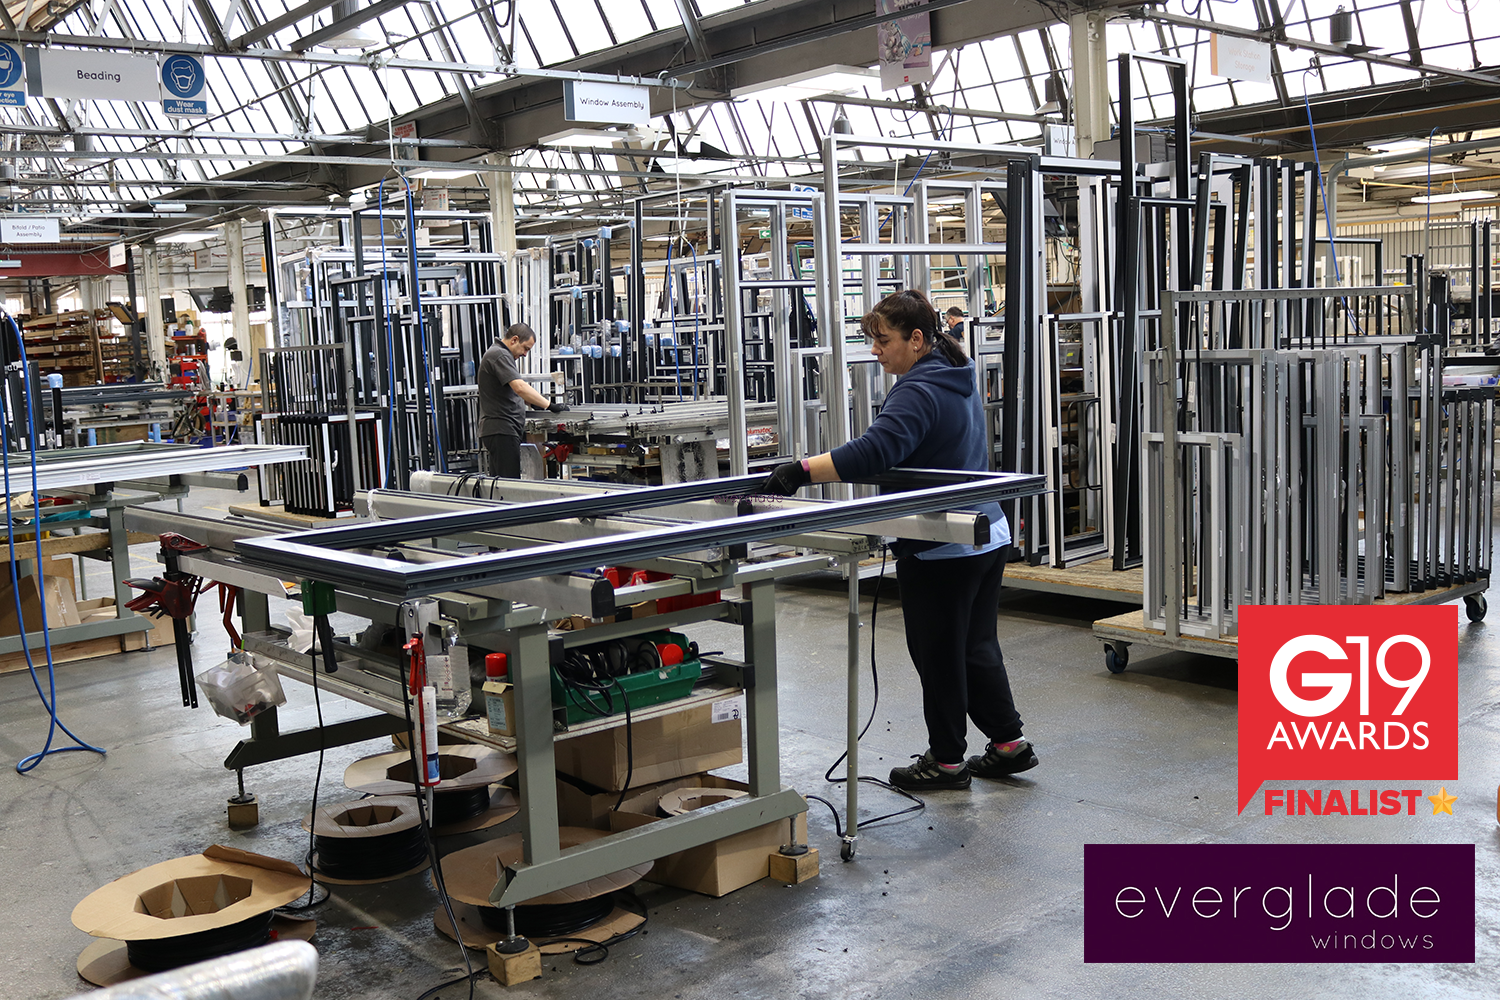 Everglade Windows Named G19 Fabricator of the Year Finalist